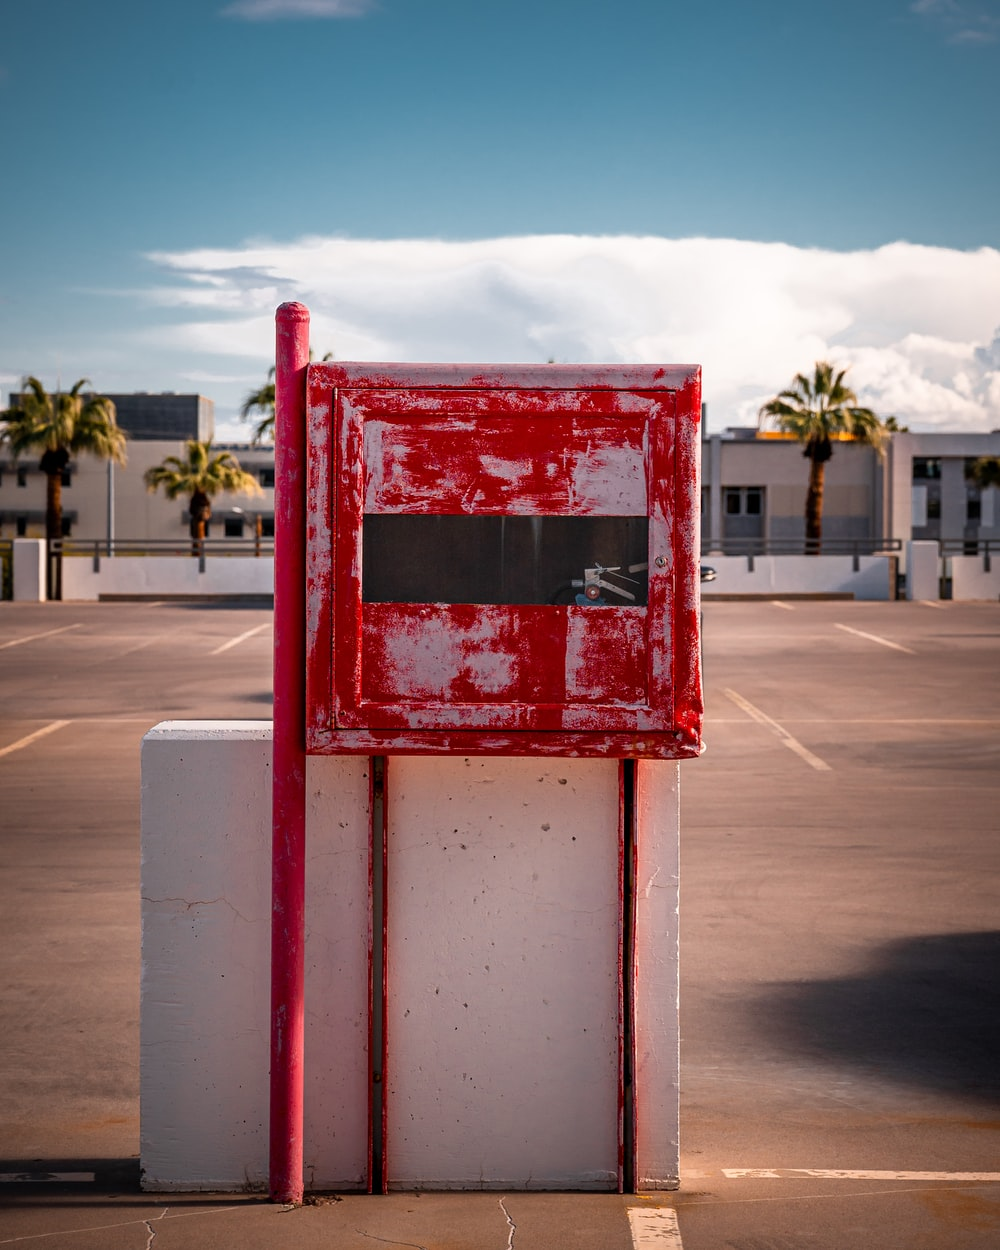 red and white post near road